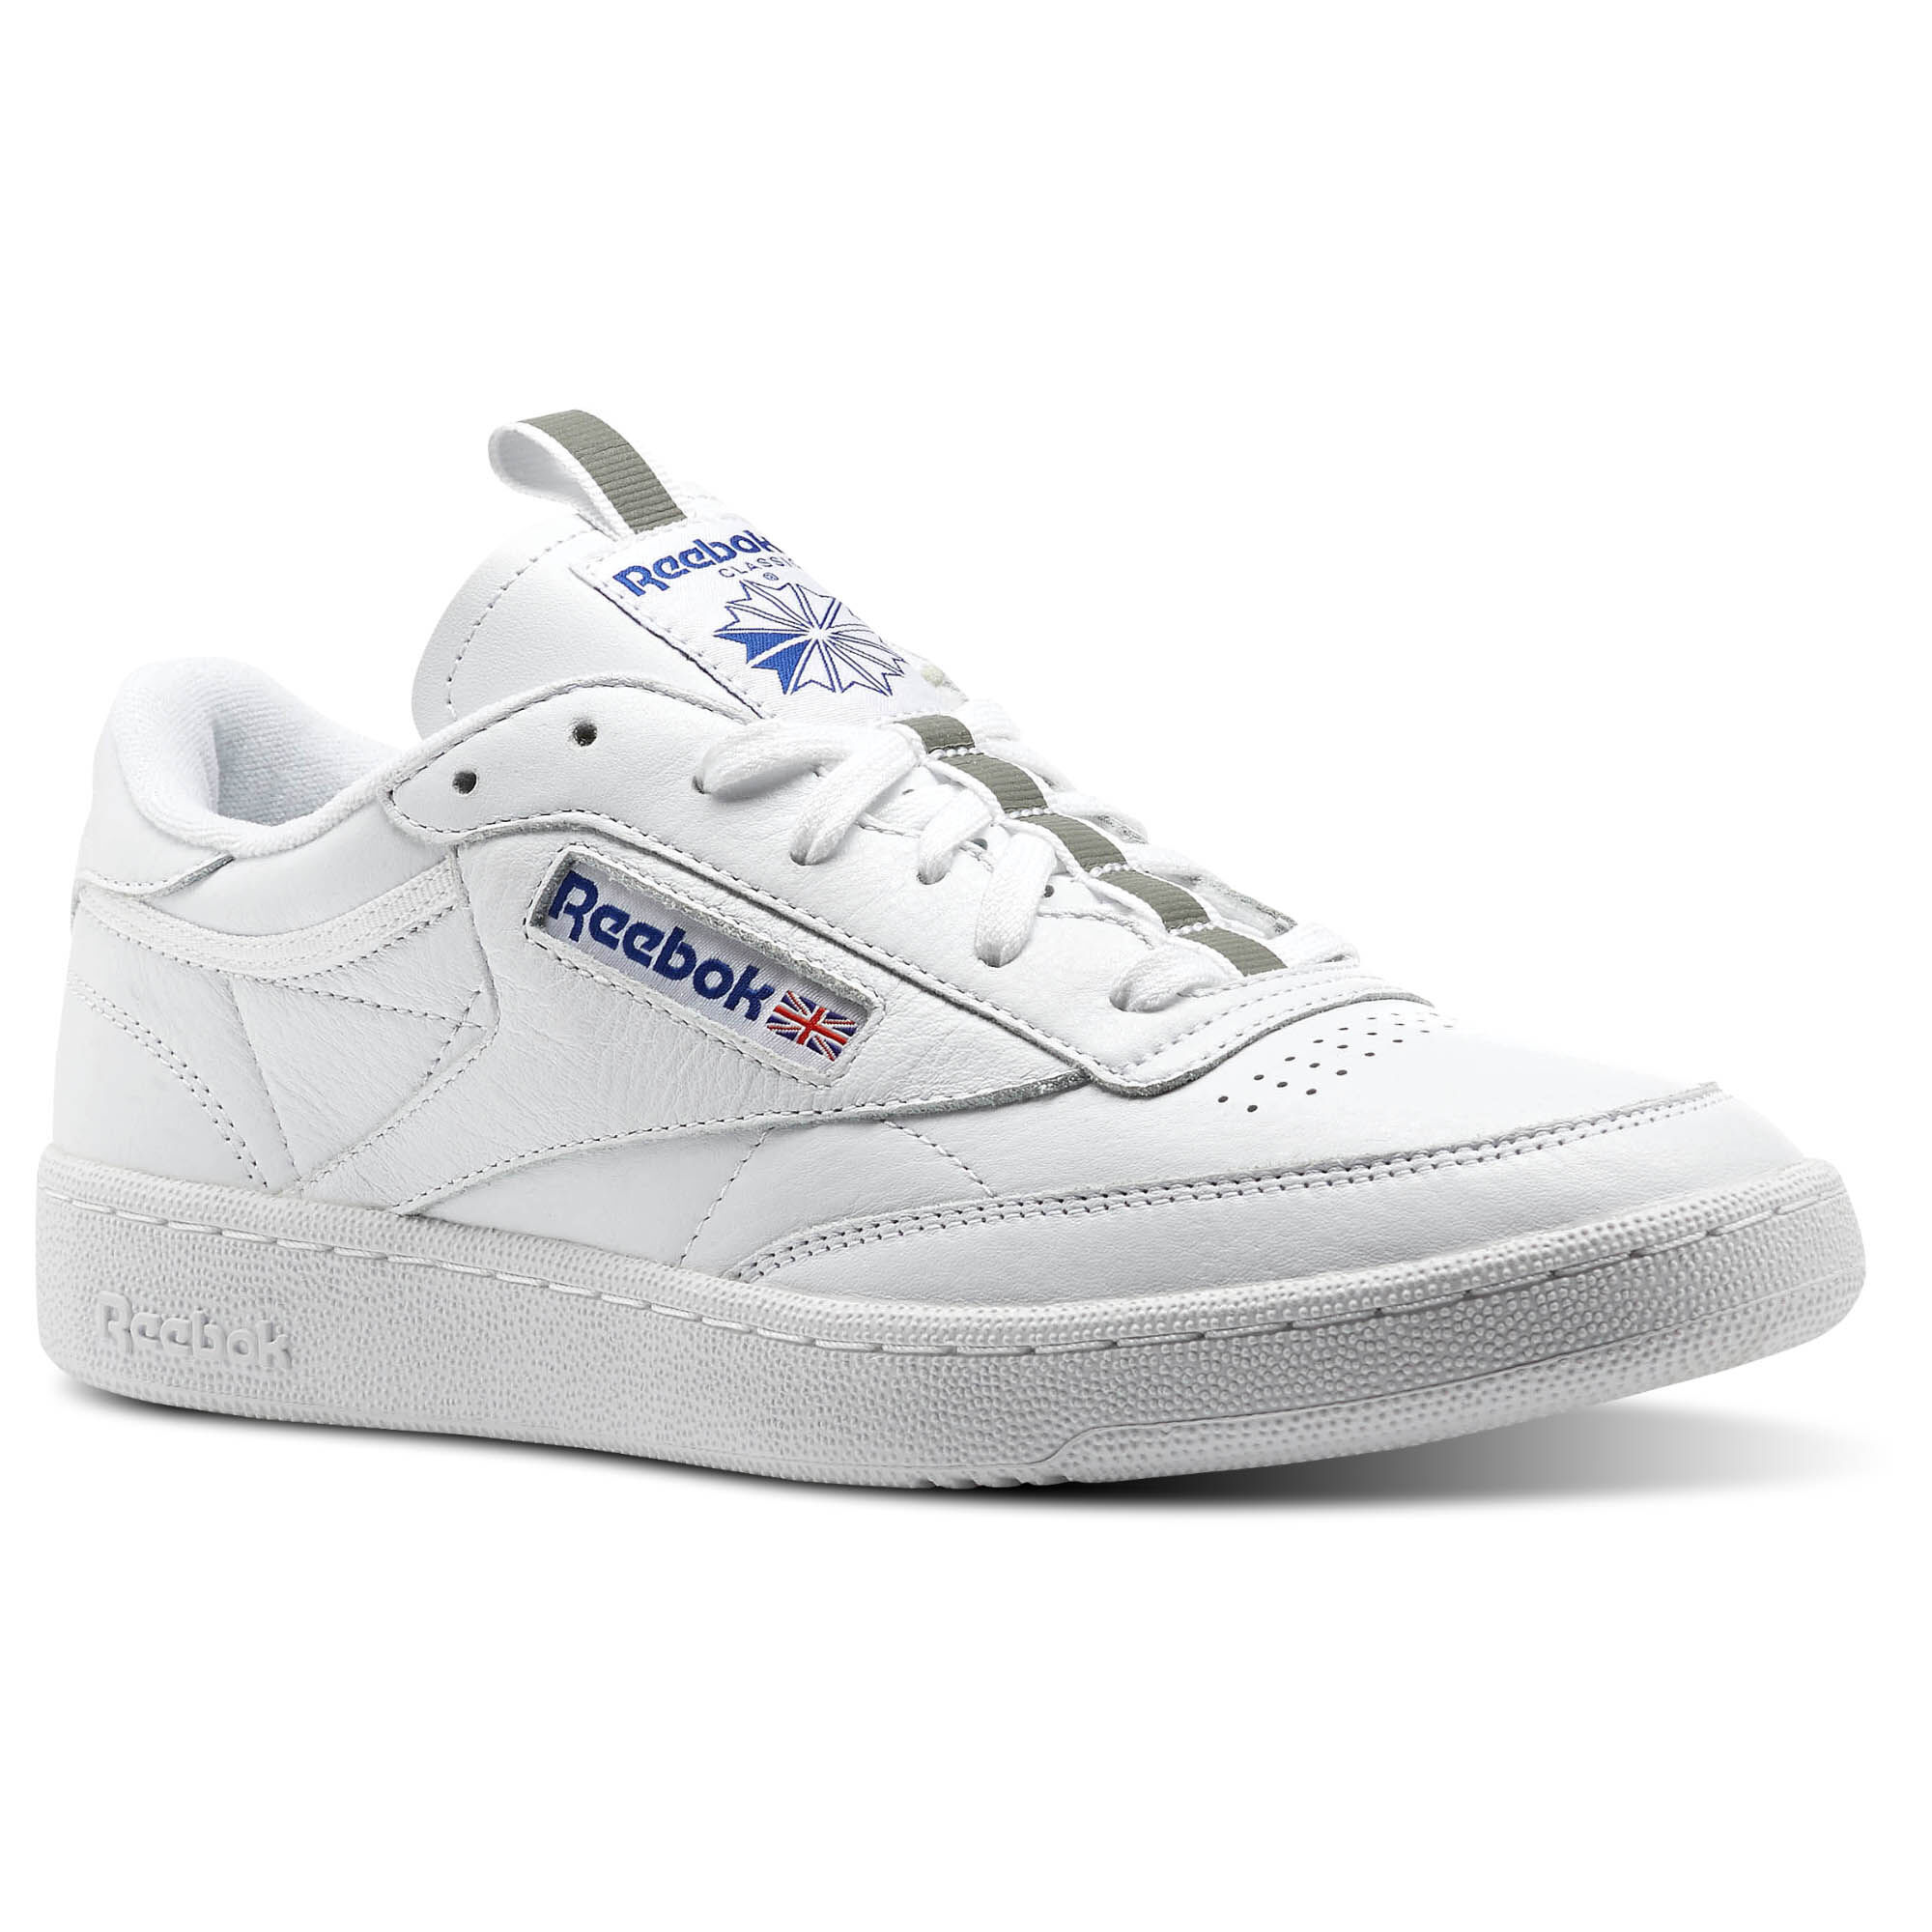 Reebok - Club C 85 RT White CM9572